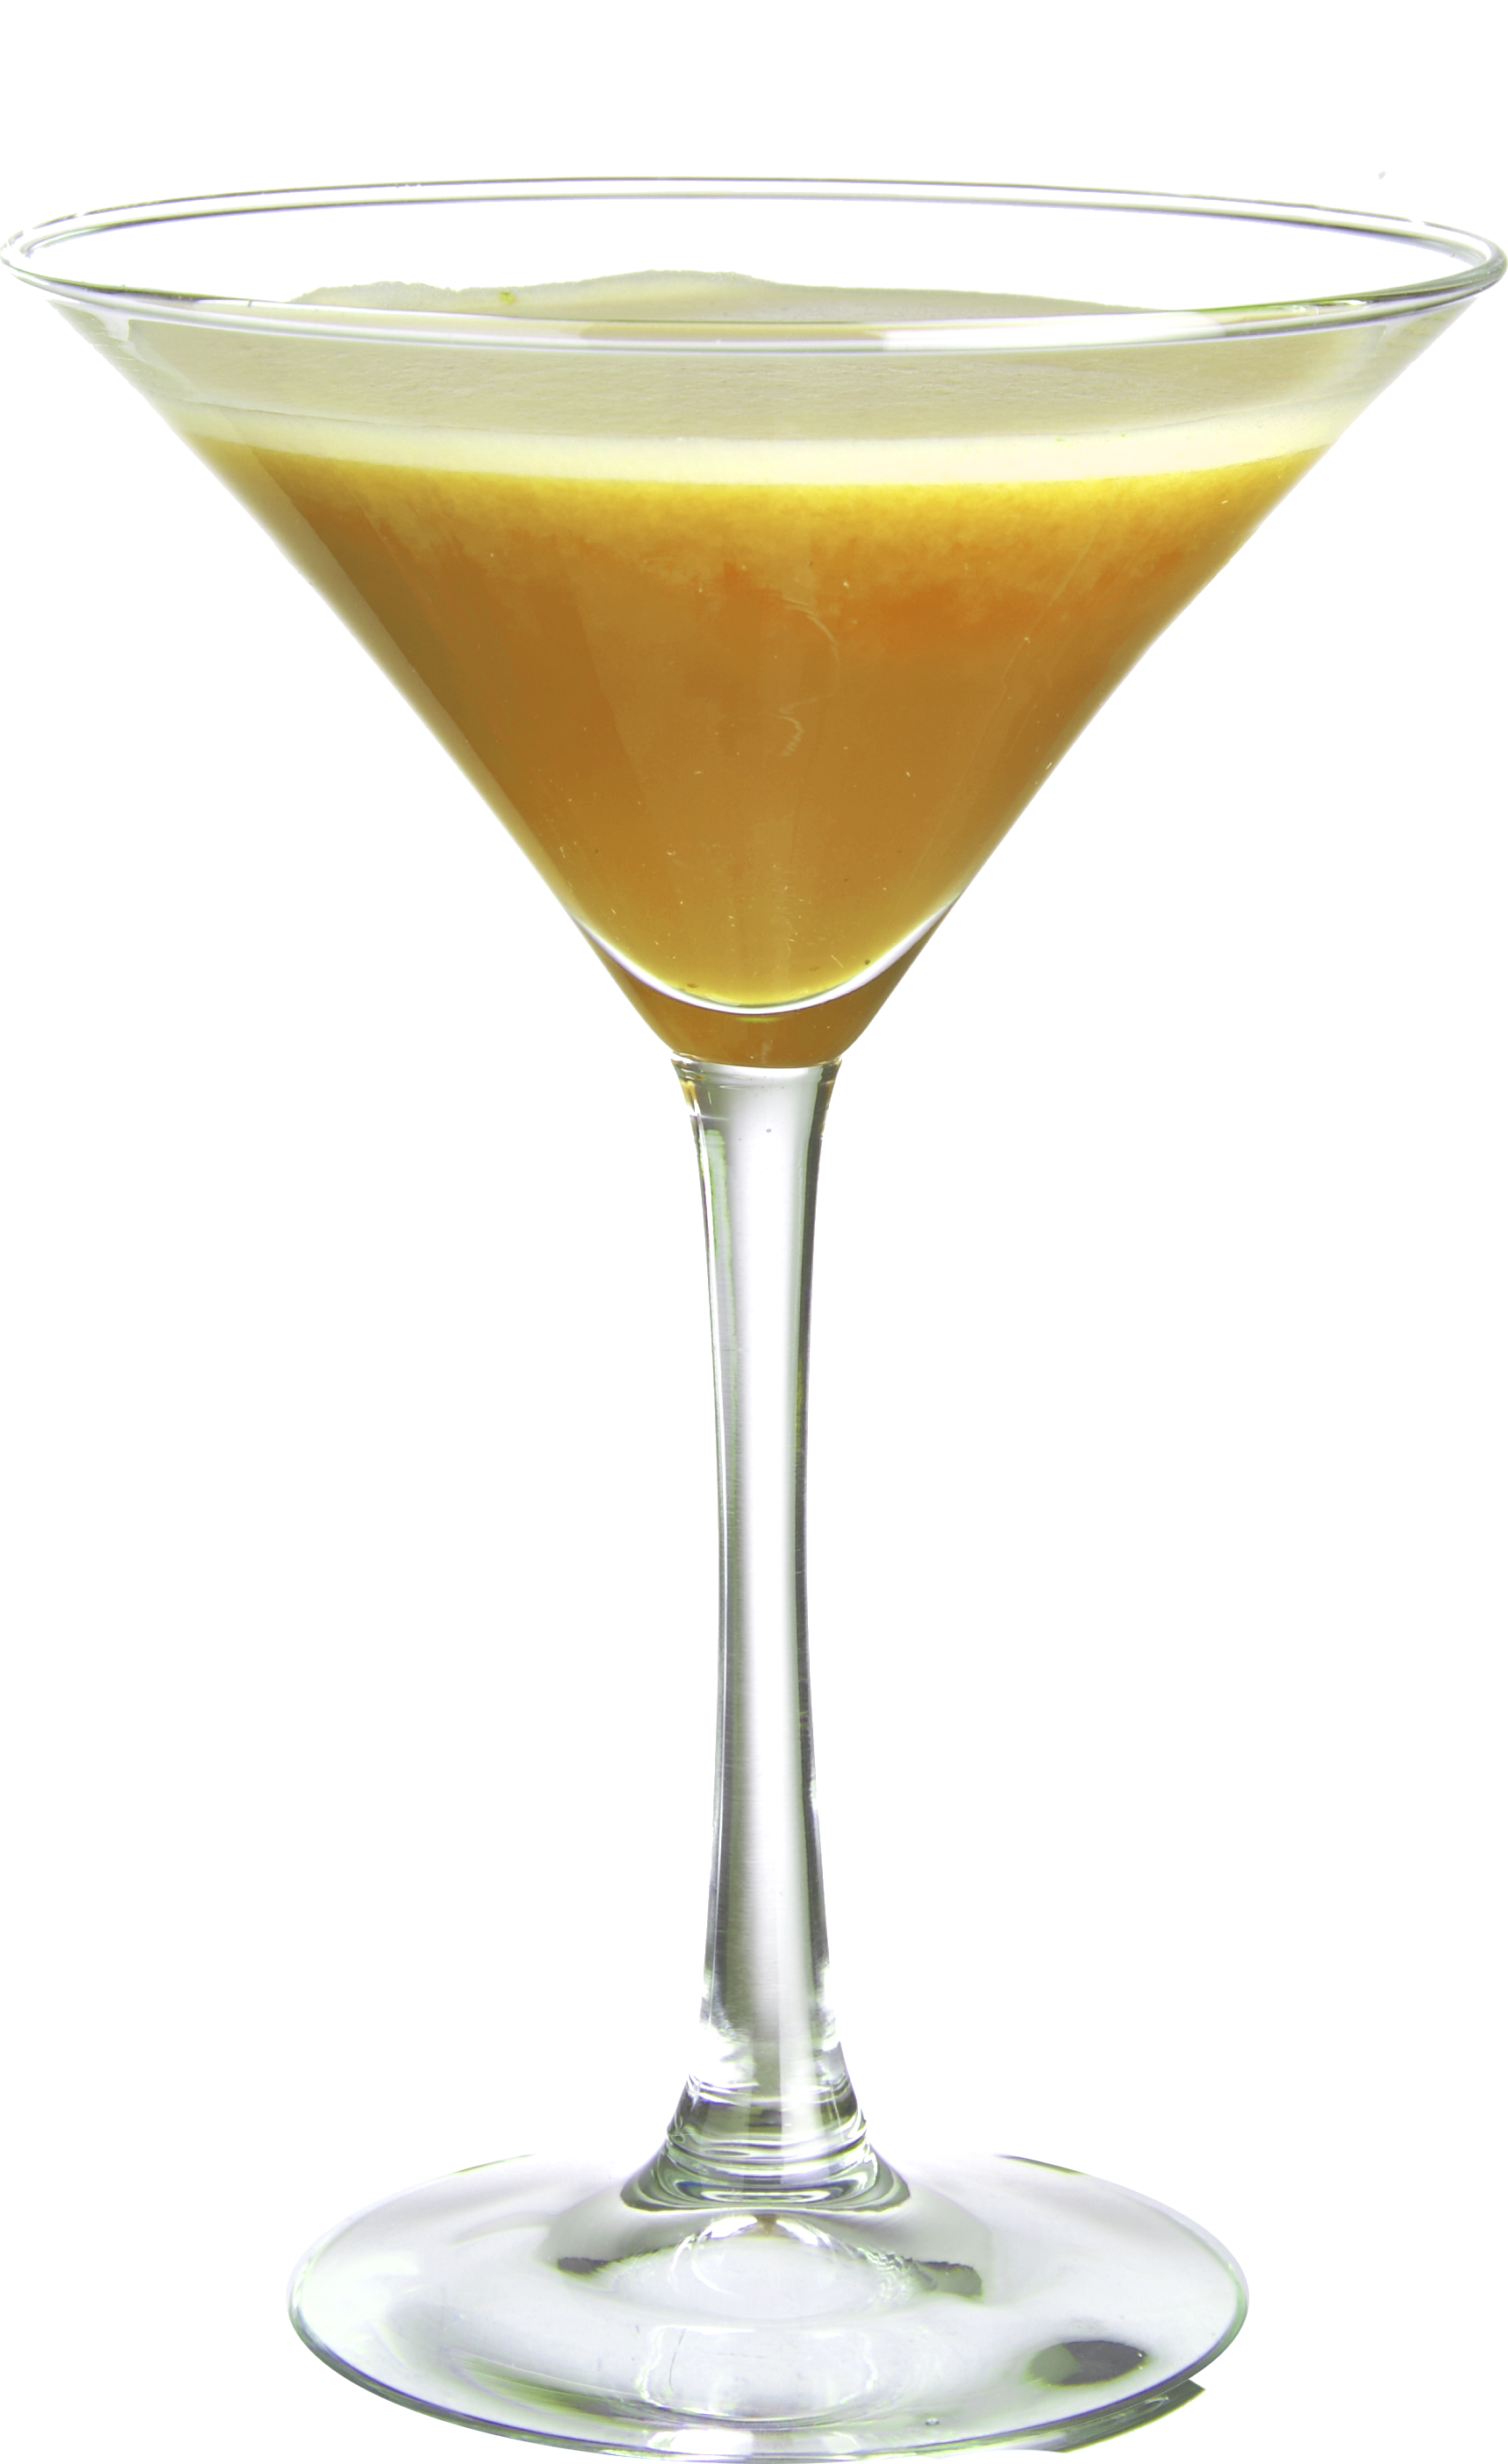 Passion Fruit Daiquiri 50ml Rum 25ml Passion Fruit Puree 20ml Lime Juice 10ml Sugar Syrup Www Funki Passionfruit Recipes Candy Cocktails Creamy Cocktails